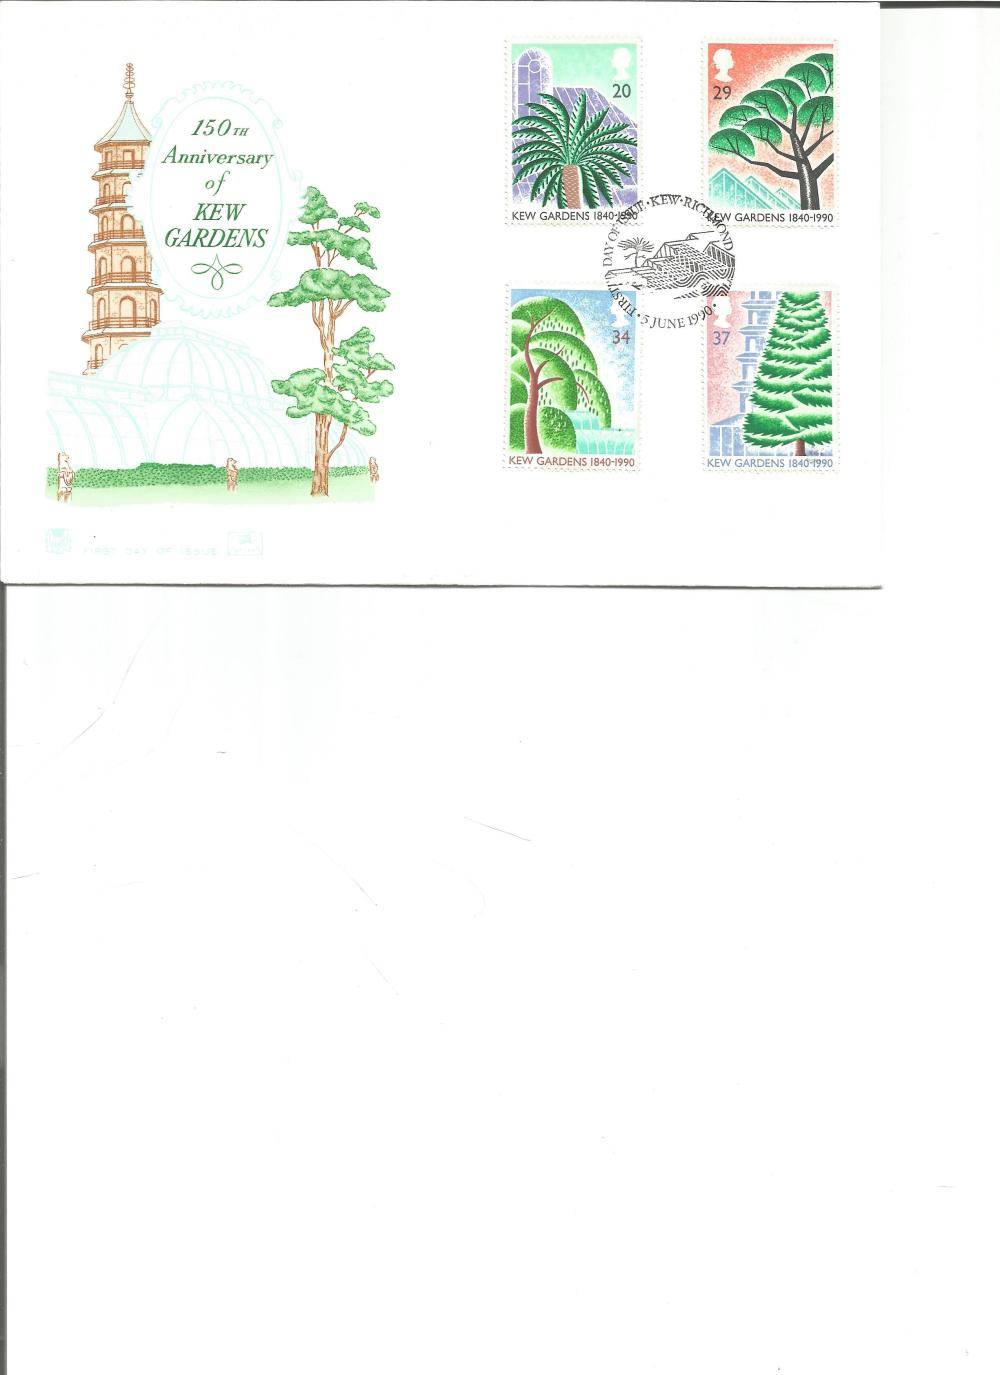 FDC 150th Anniversary of Kew Gardens c/w set of four commemorative stamps PM First Day of Issue ,